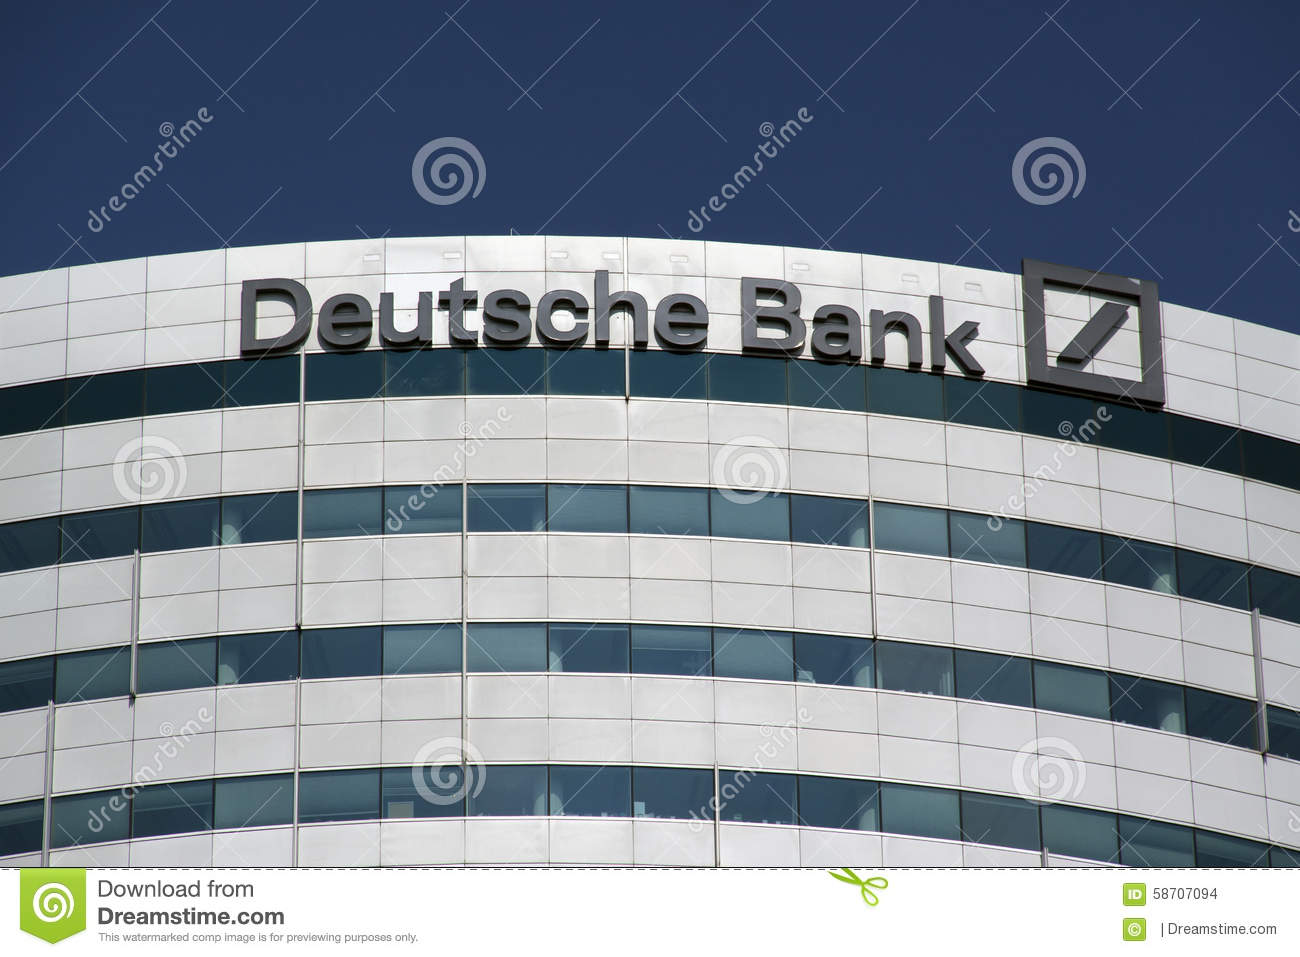 Clipart deutsche bank clipart library download Clipart deutsche bank - ClipartFest clipart library download